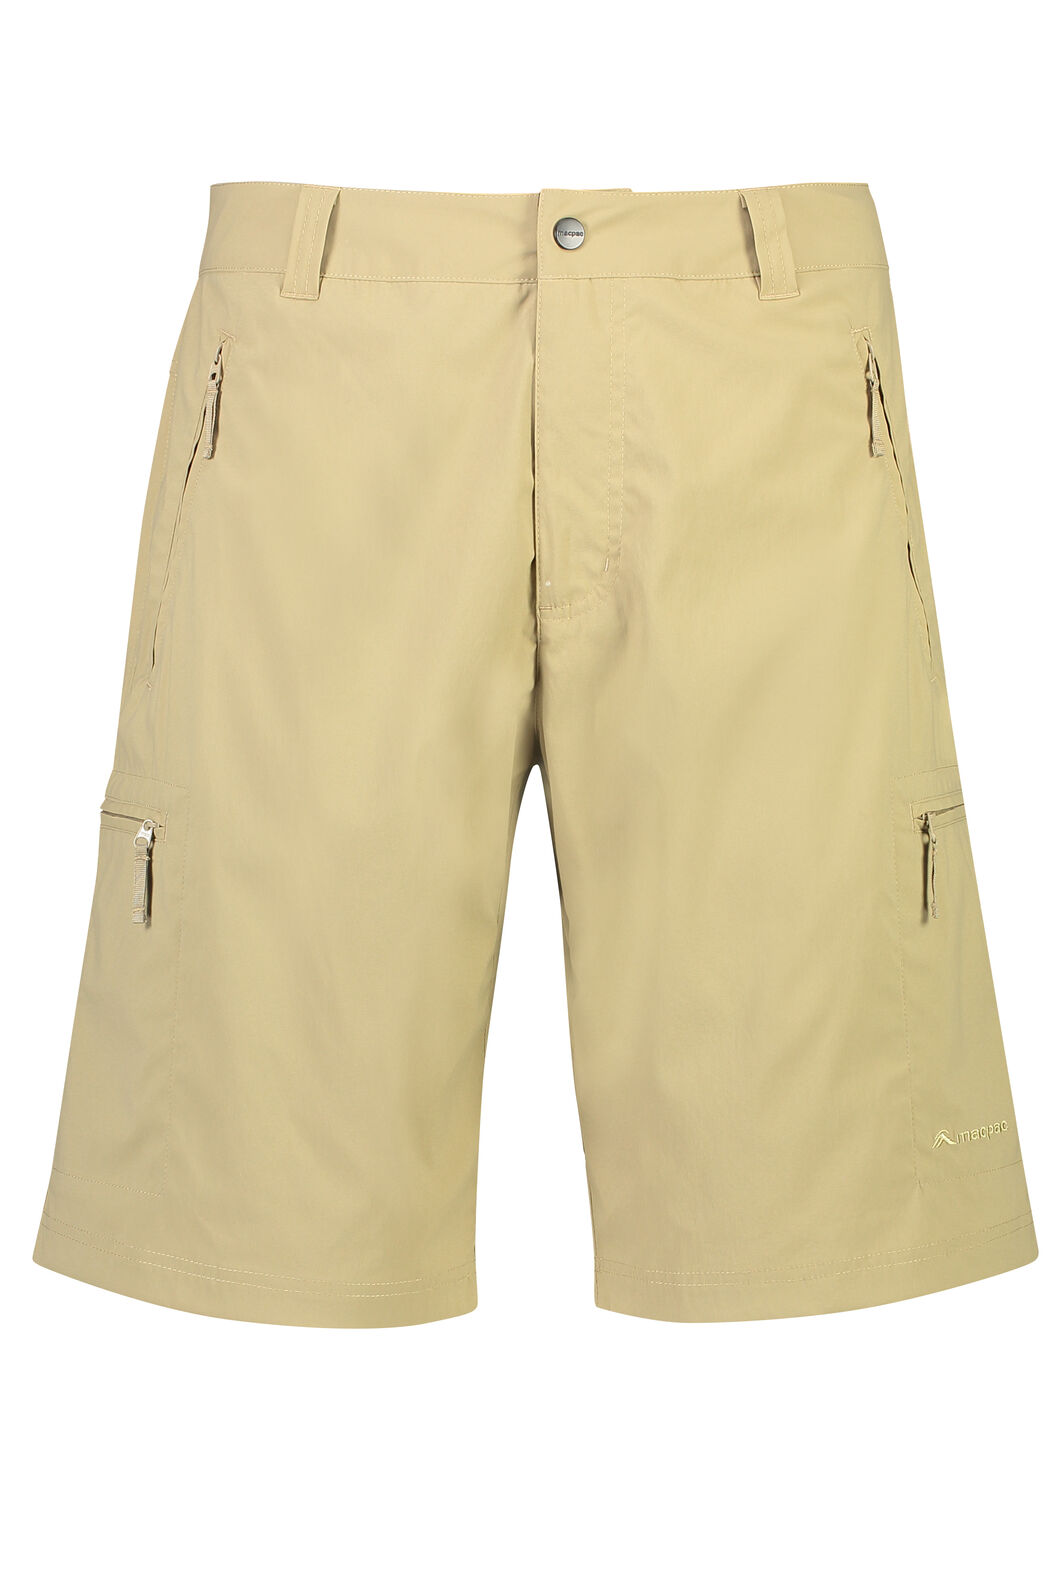 Macpac Drift Shorts - Men's, Lead Grey, hi-res